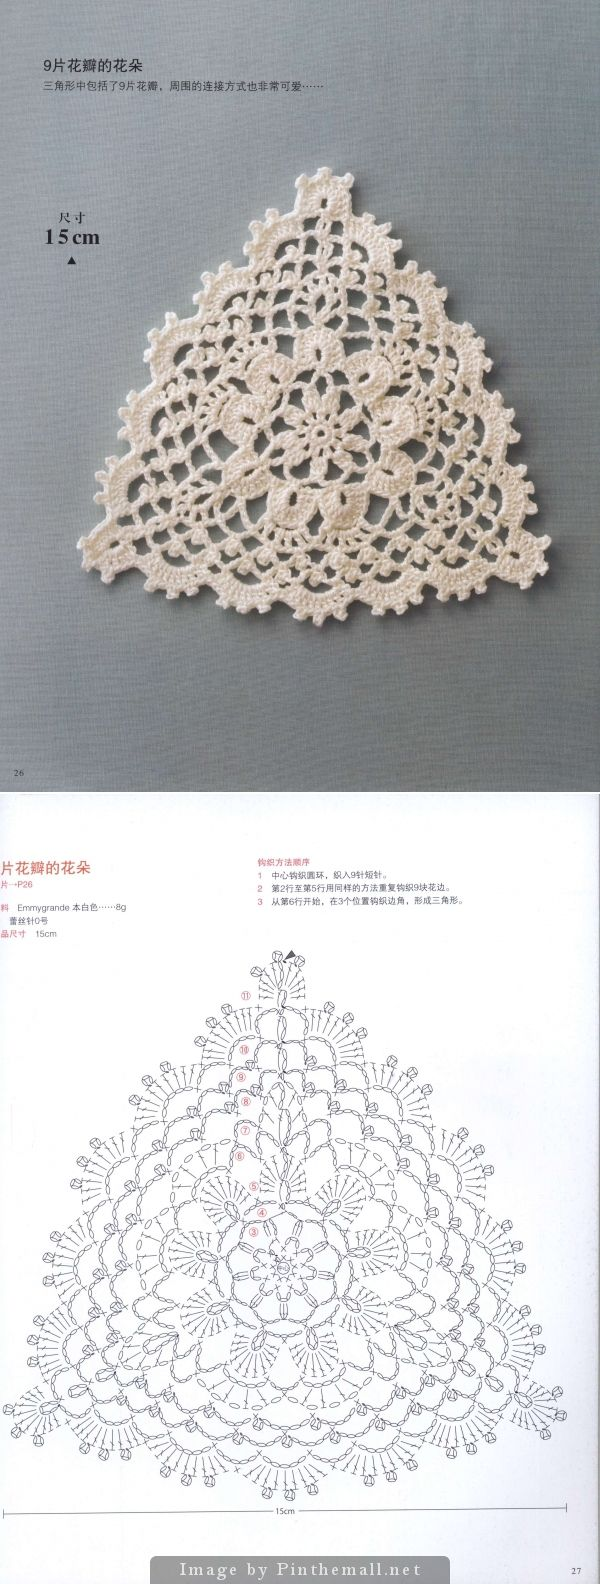 Triangular motif ~~ Japanese crochet book ~~ http://imgbox.com/g/Ui7cDR4GEV